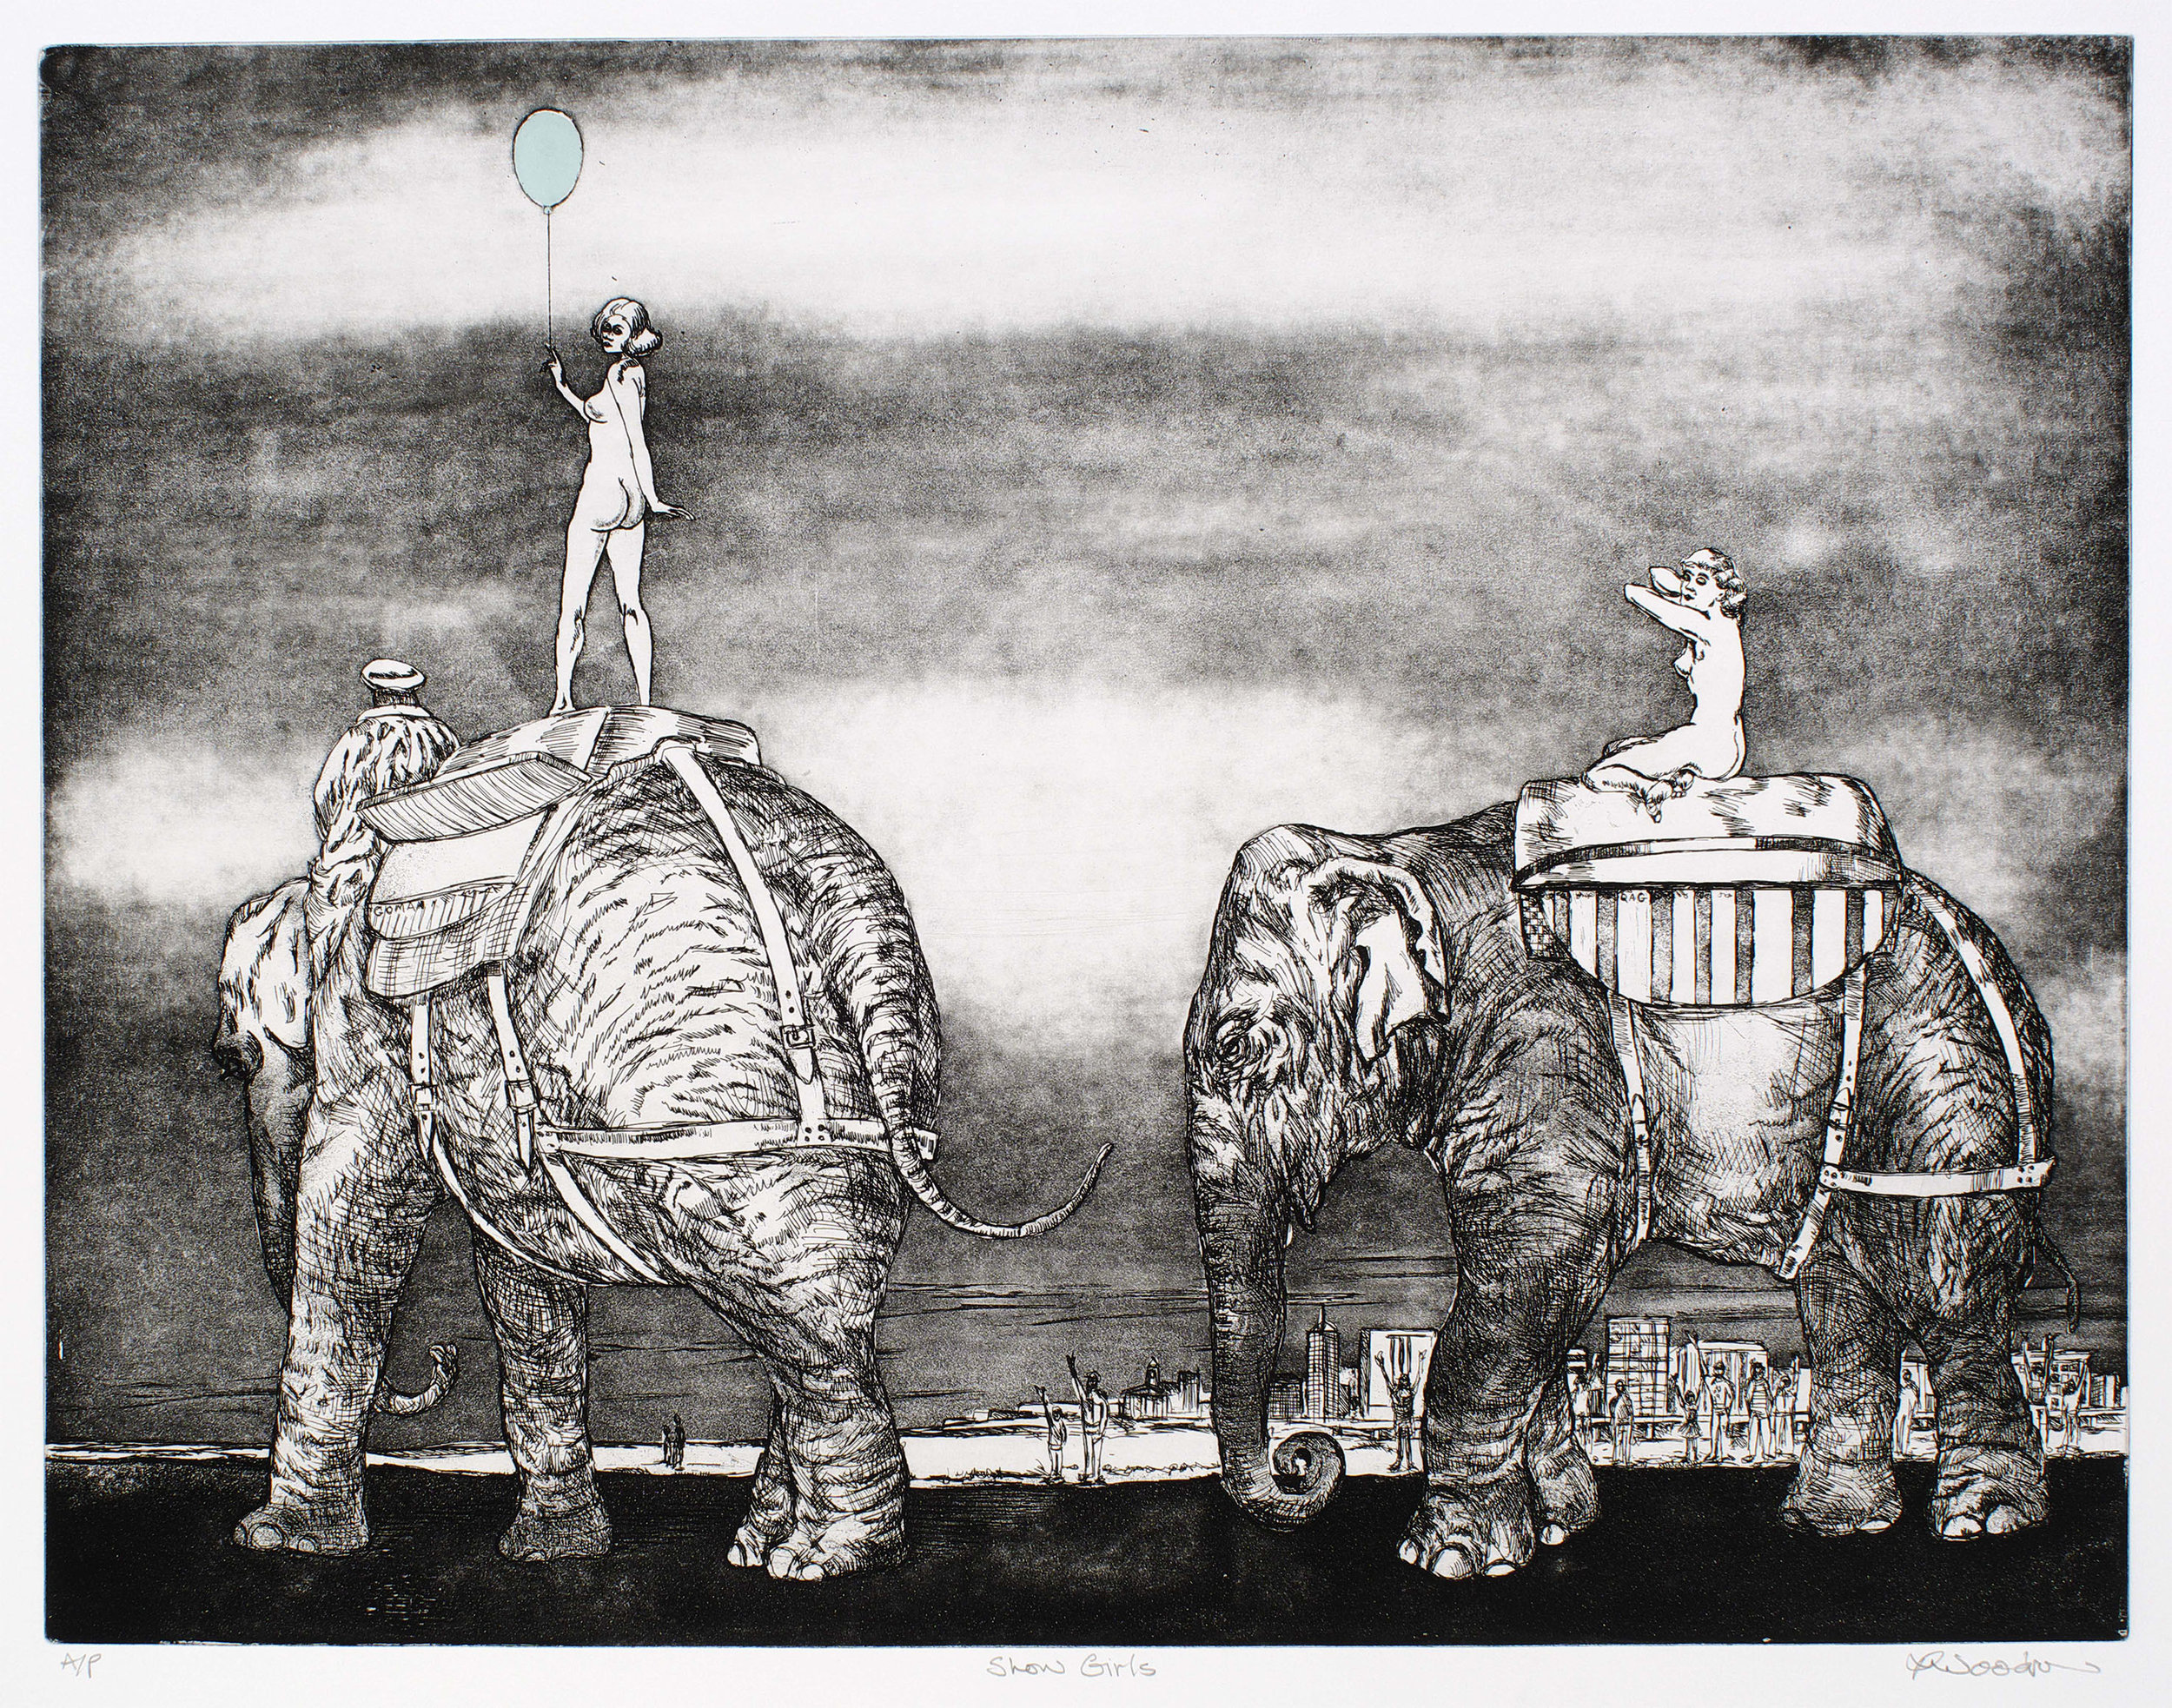 """Show Girls   etching, aquatint and chine collé (copper plate) 490 x 640 mm. Artist's Proof.  The elephants are sources from a German manual on drawing animals and the """"girls"""" from figure drawing manuals. The blankets carry the names of the elephants """"GOMA and QAG which are the cultural icons across the river from Brisbane city, in the background, with the crowd naturally excited to see the show girls. When I produced this etching it was soon after the Gallery of Modern Art in Brisbane had opened and many were disappointed to find that it was the same crowd-pleasing fare that was being served up. In the eight or so years since making this print nothing much has changed with GOMA, like so many public galleries, finding that when the imperative is to get punters through the door, it is very difficult to avoid the model of the circus or funfair. To ask the question """"does that matter"""" is to highlight the problem."""